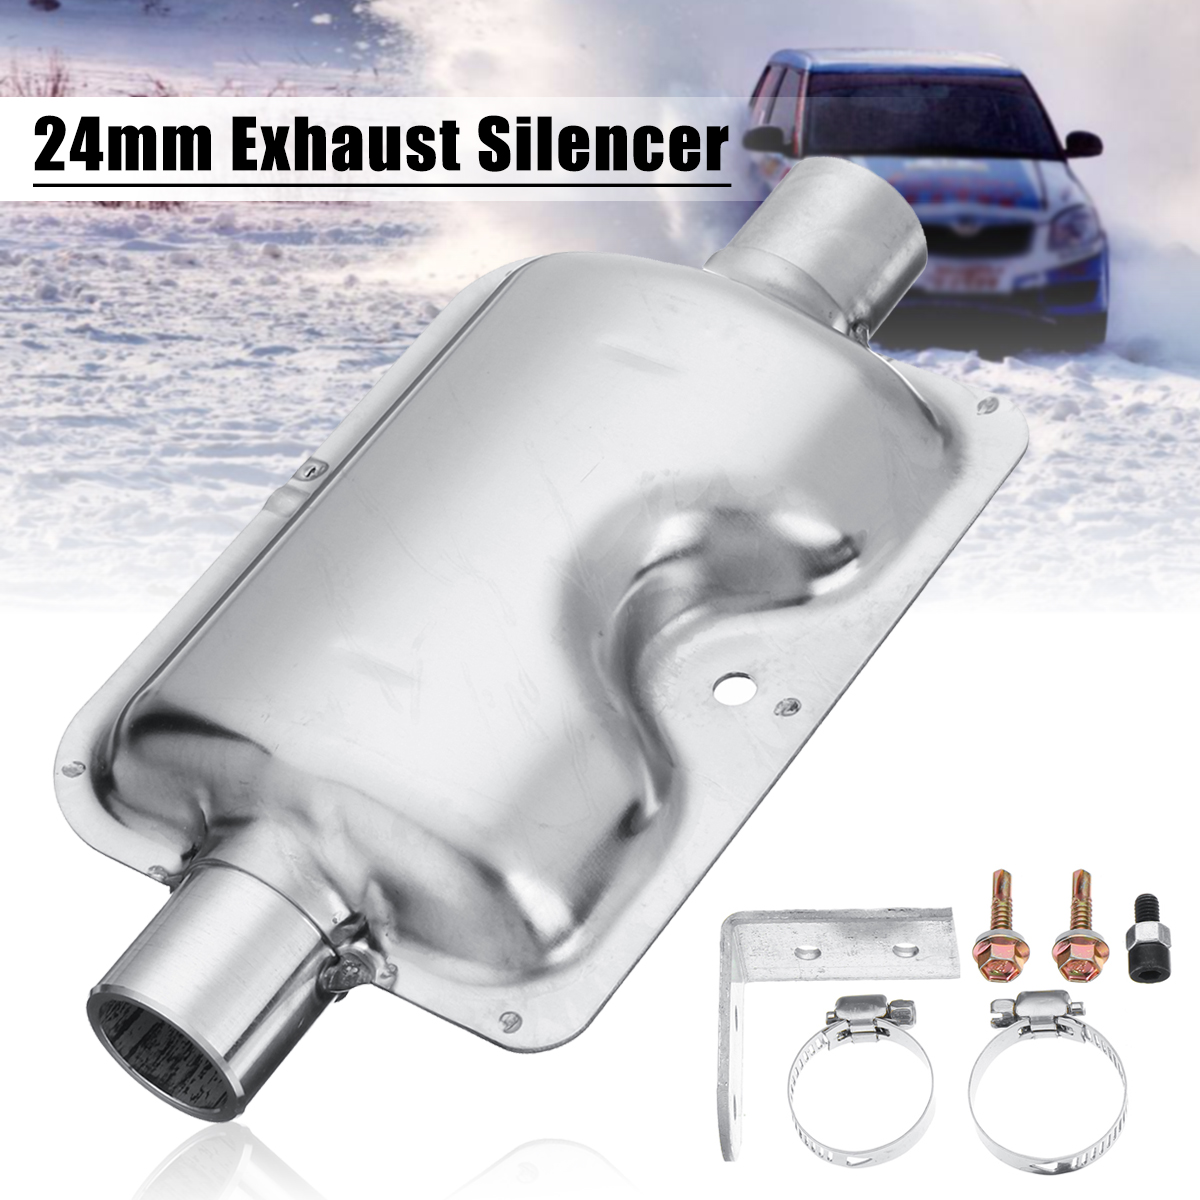 24mm/0.9inch Car Truck Portable Pipe Silencer Exhaust Muffler Clamps Bracket for Webasto Ebespacher Diesel Heater high quality intake silencer and exhaust muffler for air parking heater